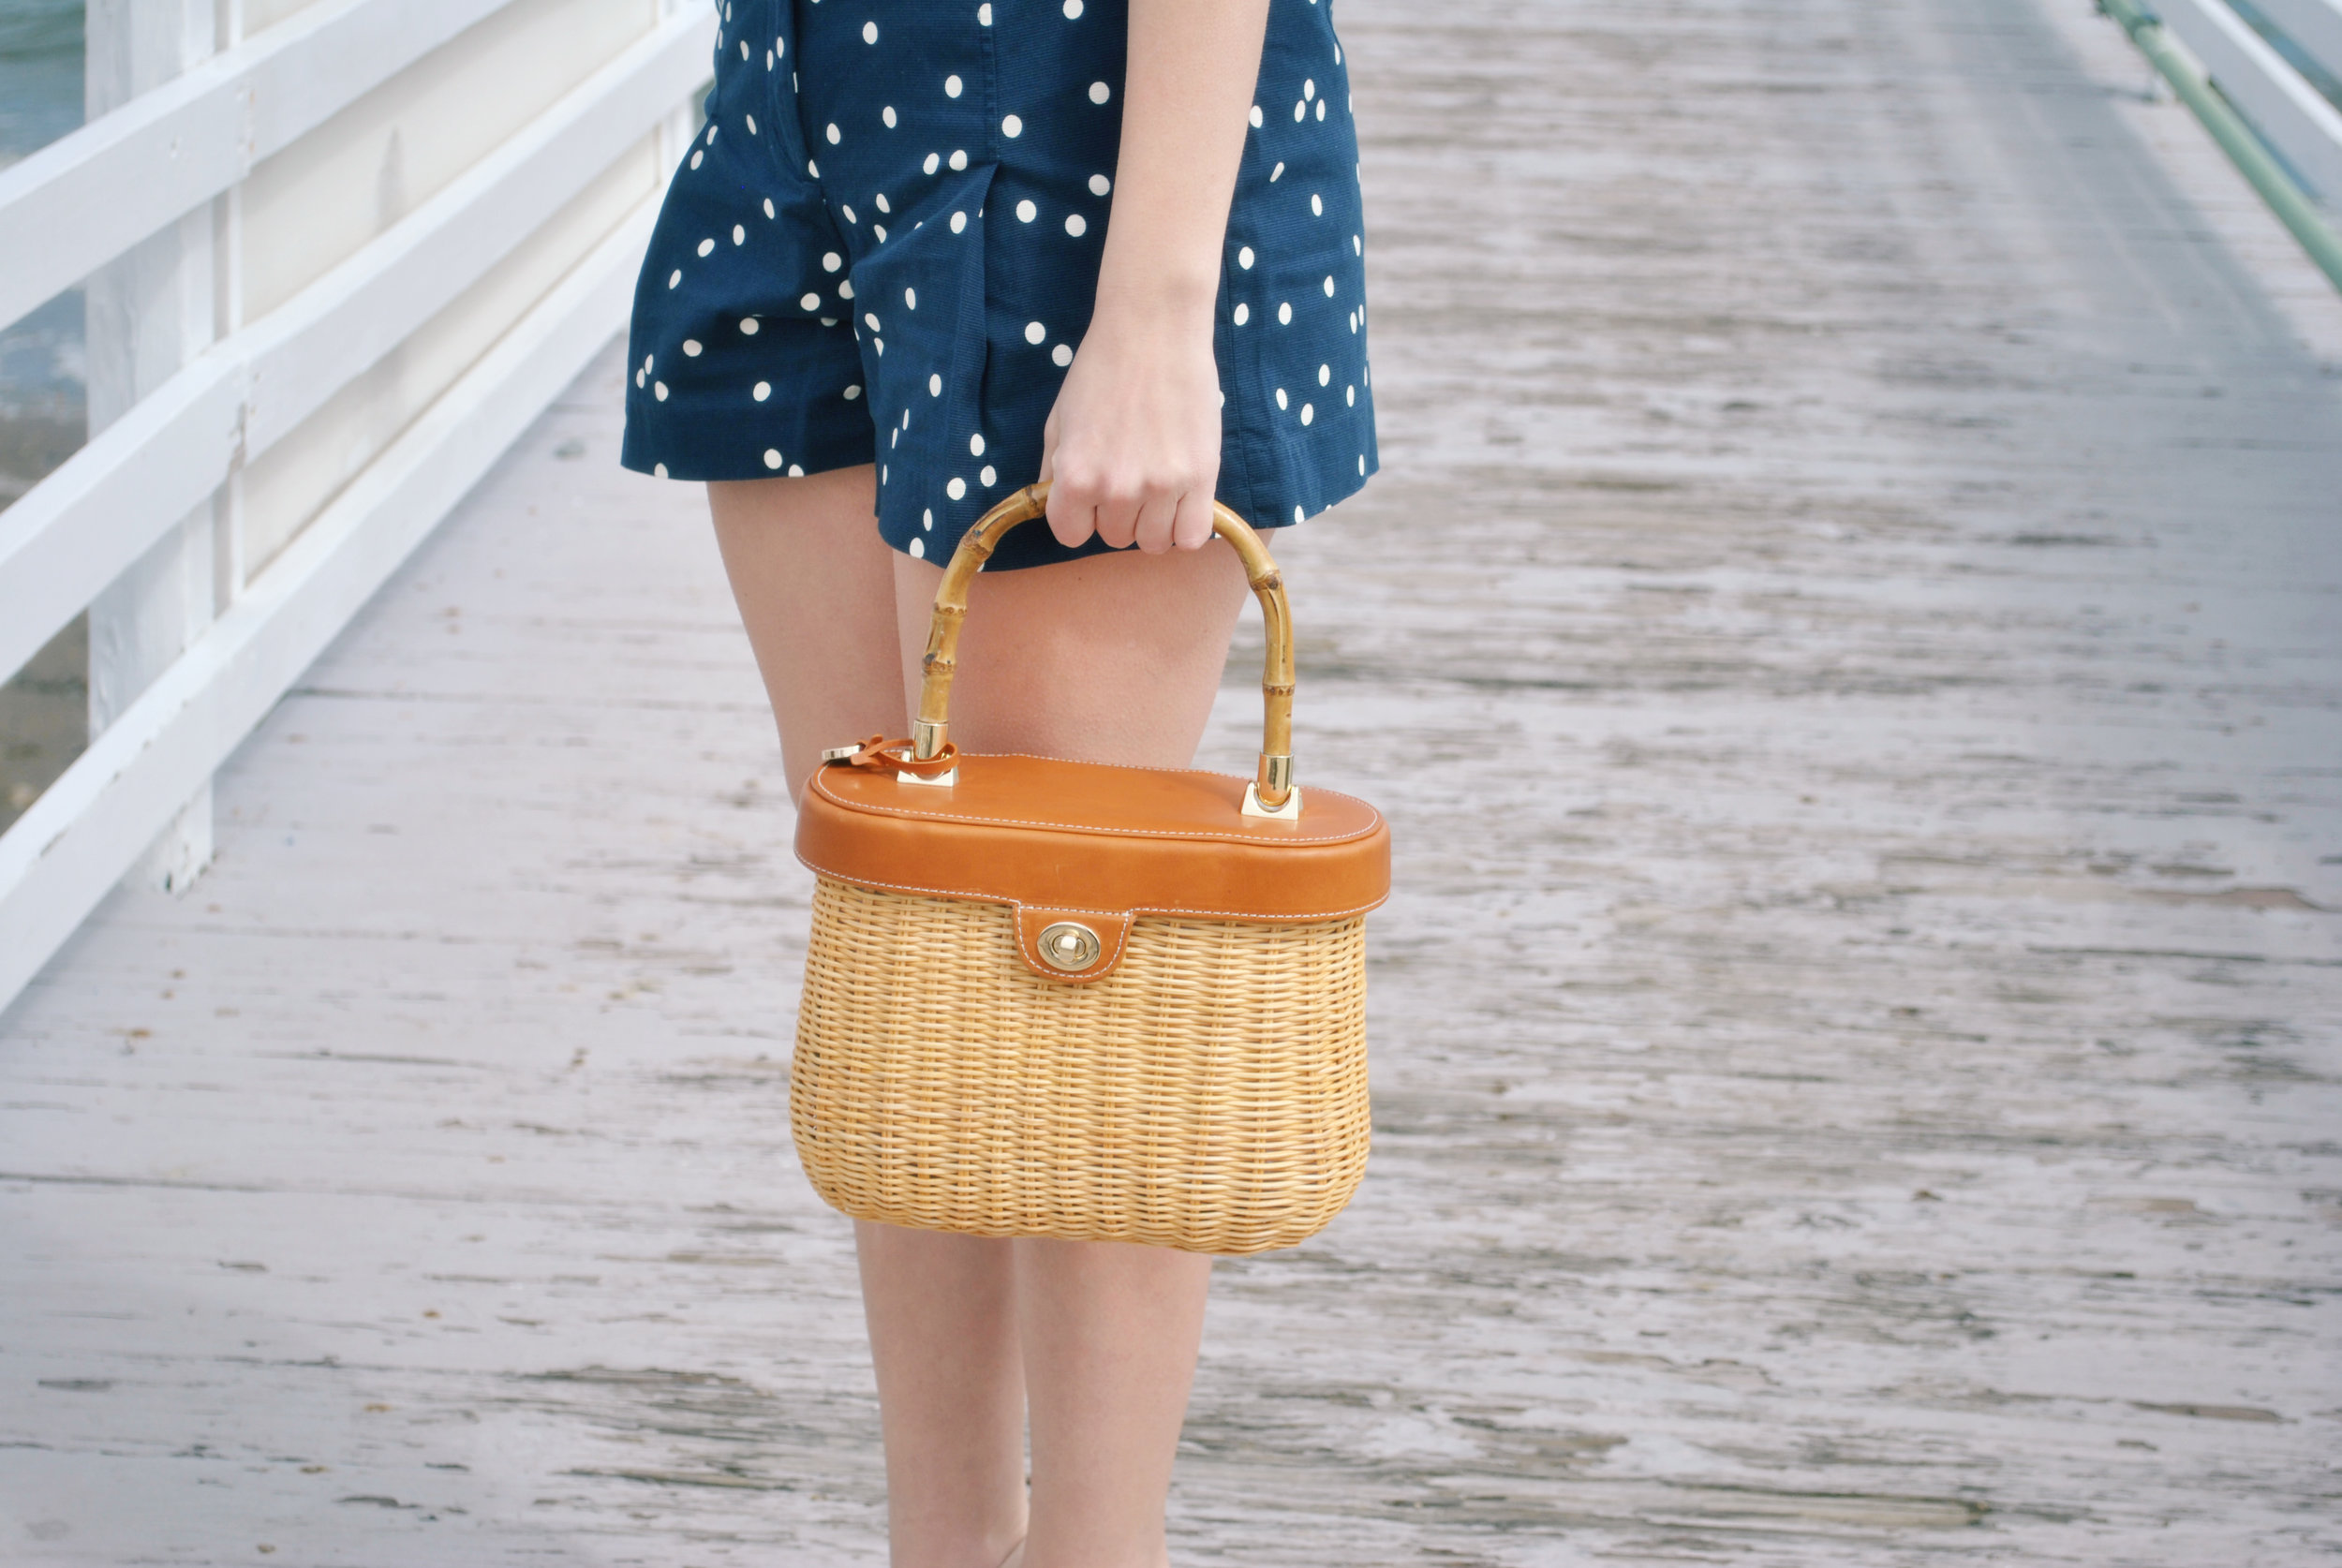 thoughtfulwish | j.crew, high-waisted shorts, polka dots, pinup, nantucket basket, j.mclaughlin, boston, bosblogger, fashion, fashion blogger, preppy, fblog